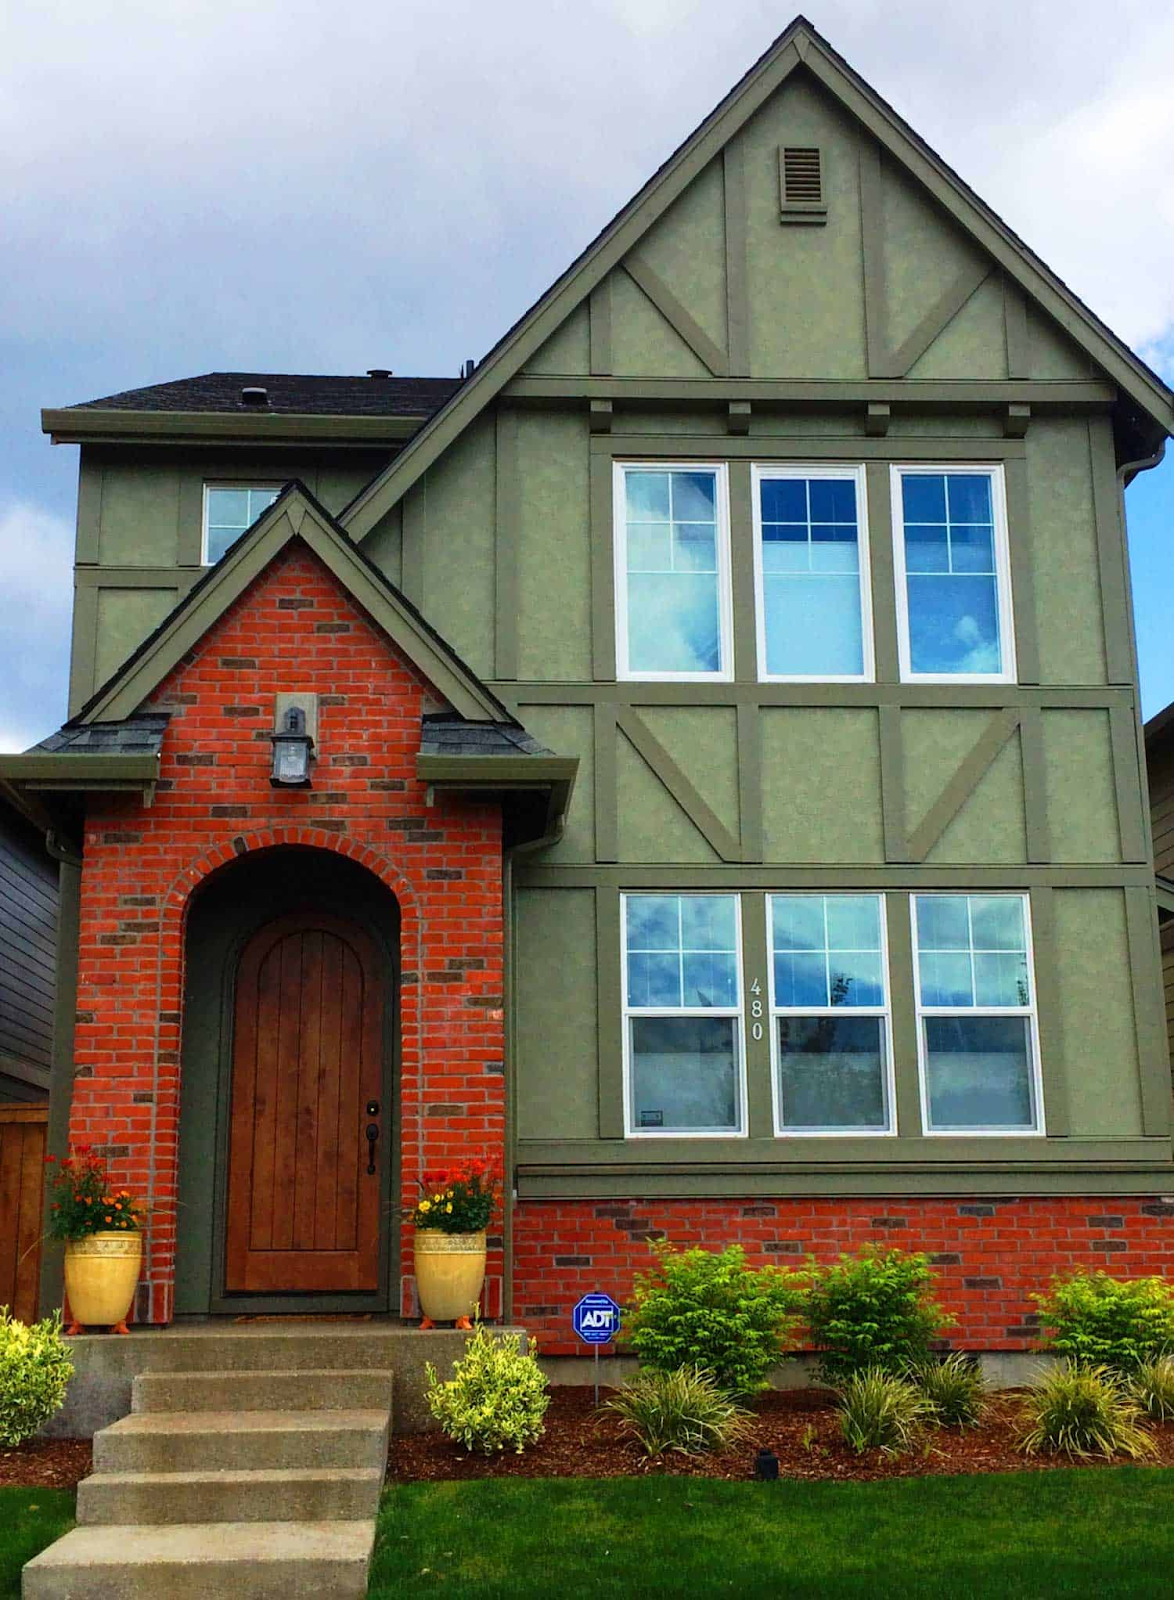 7 Exterior Window Trim Ideas To Inspire Your Next Home Project